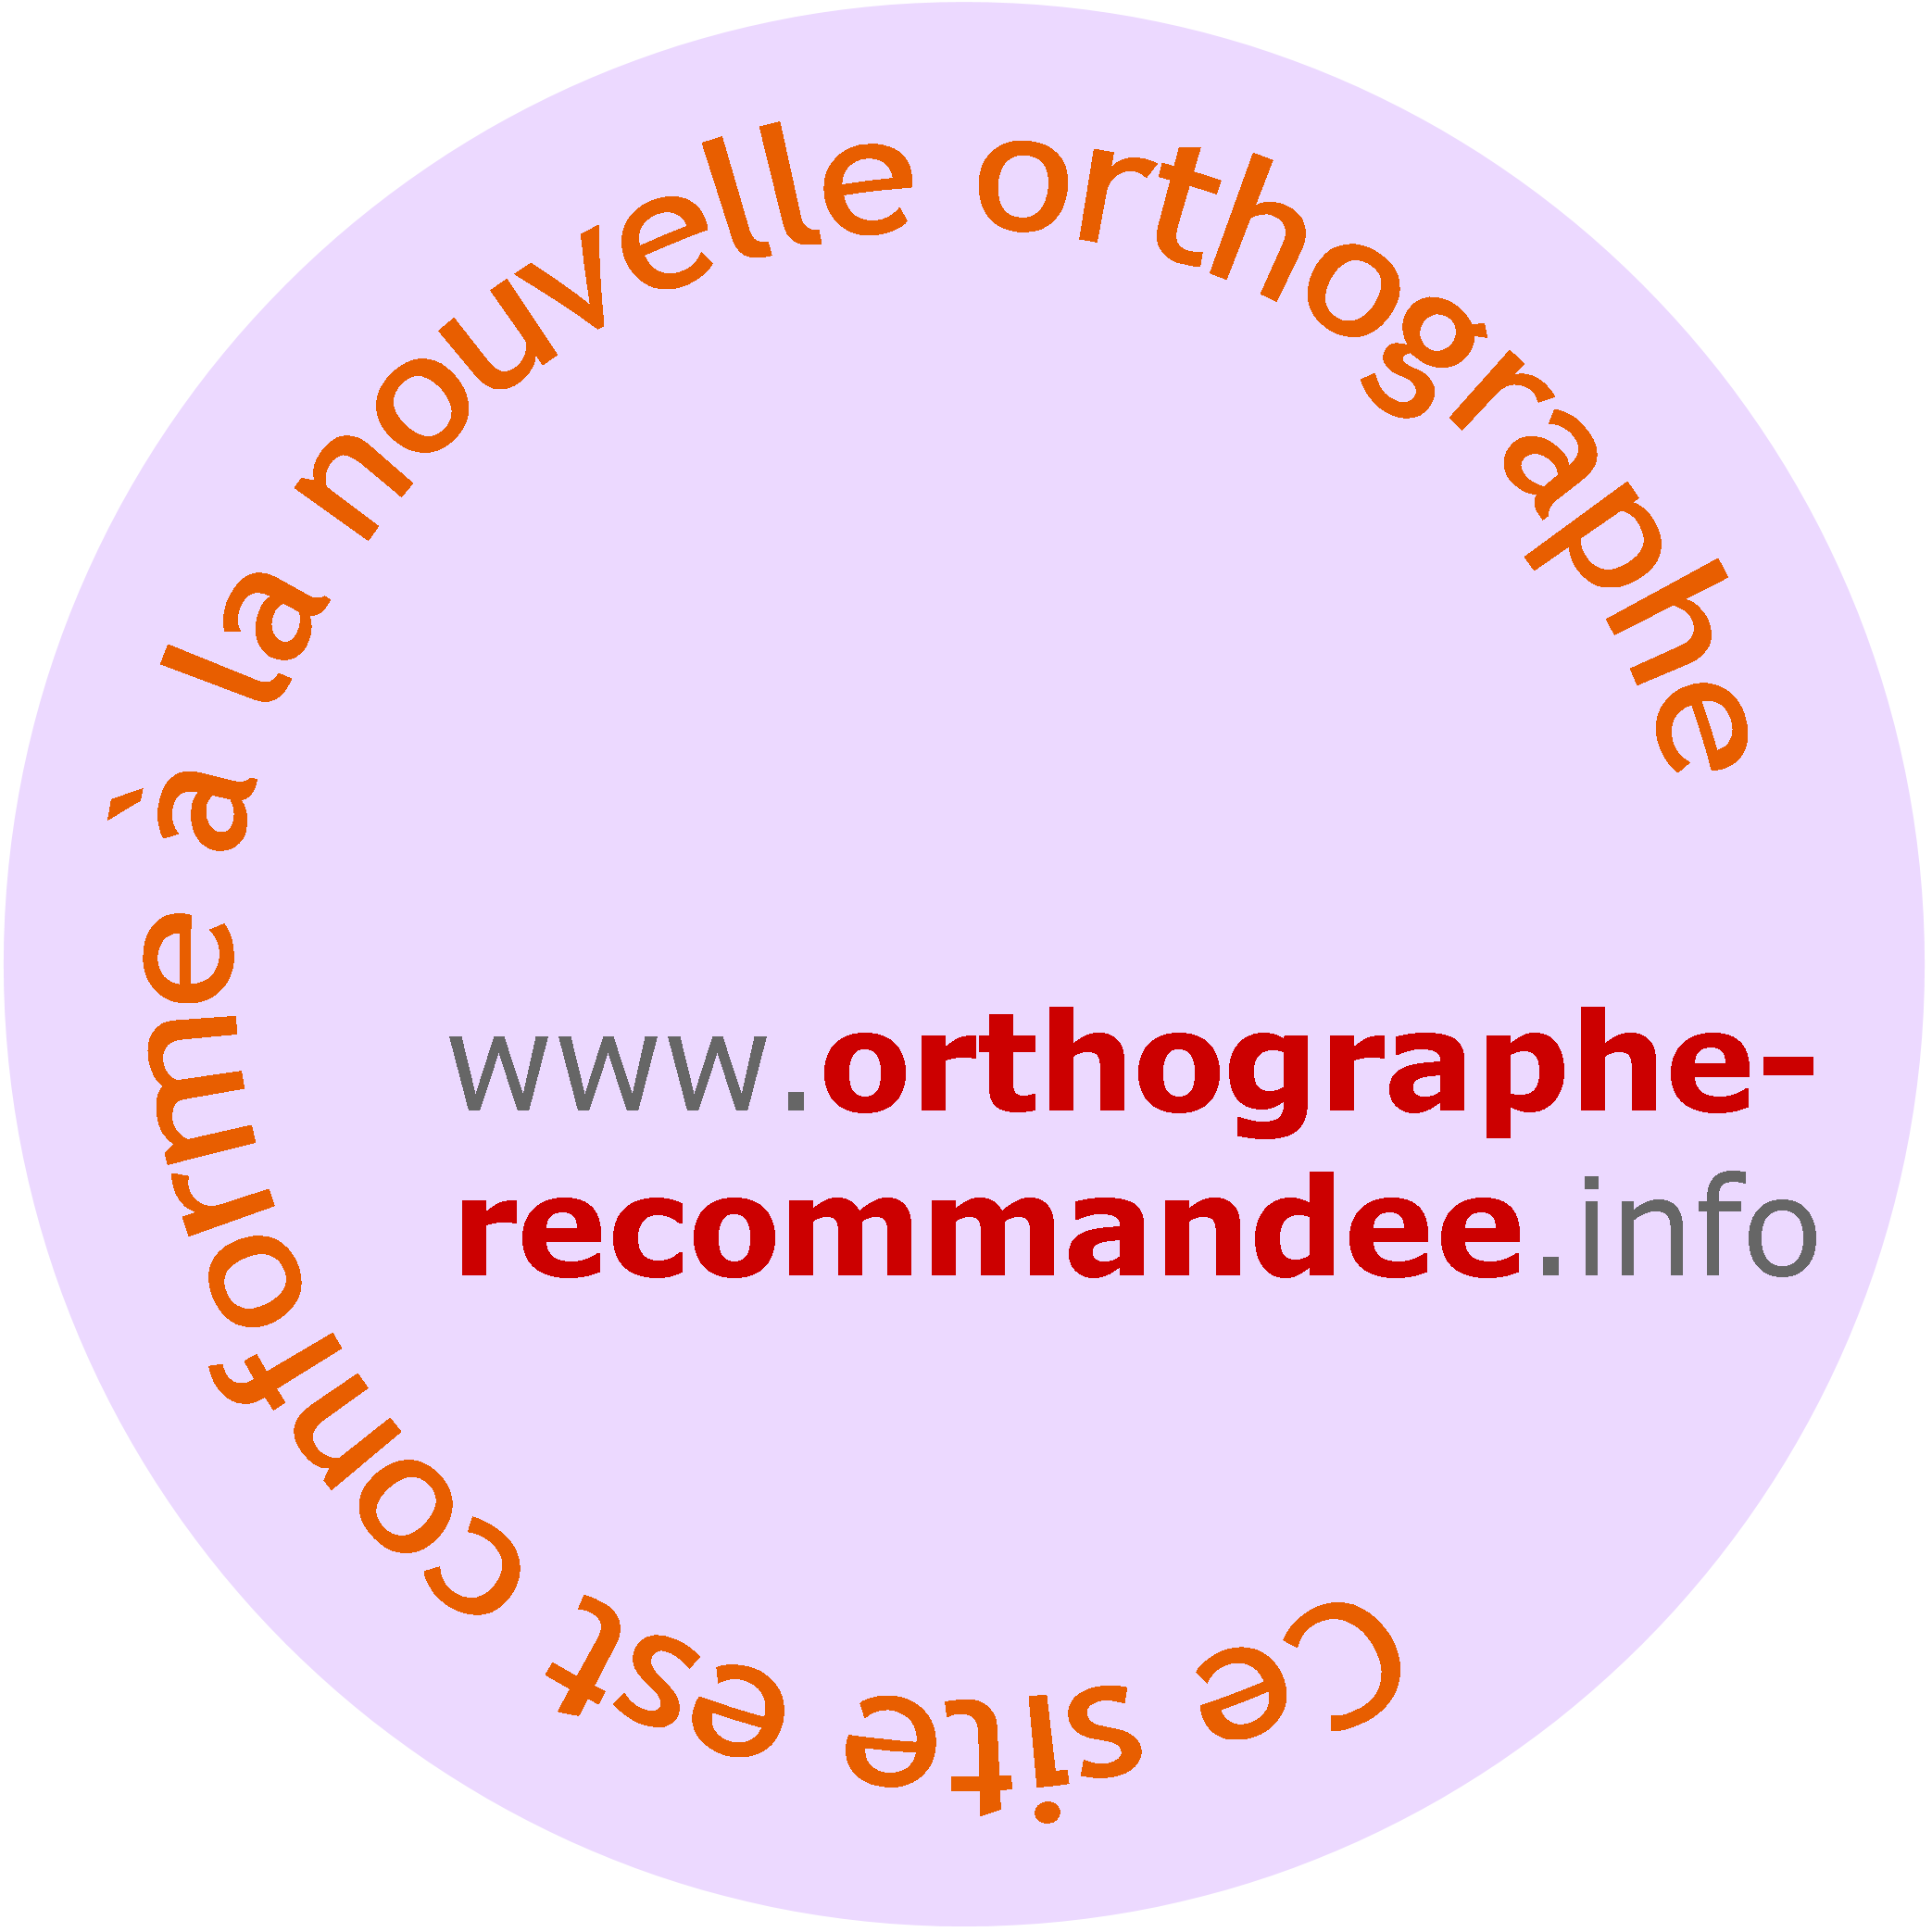 http://www.orthographe-recommandee.info/pros/site.png